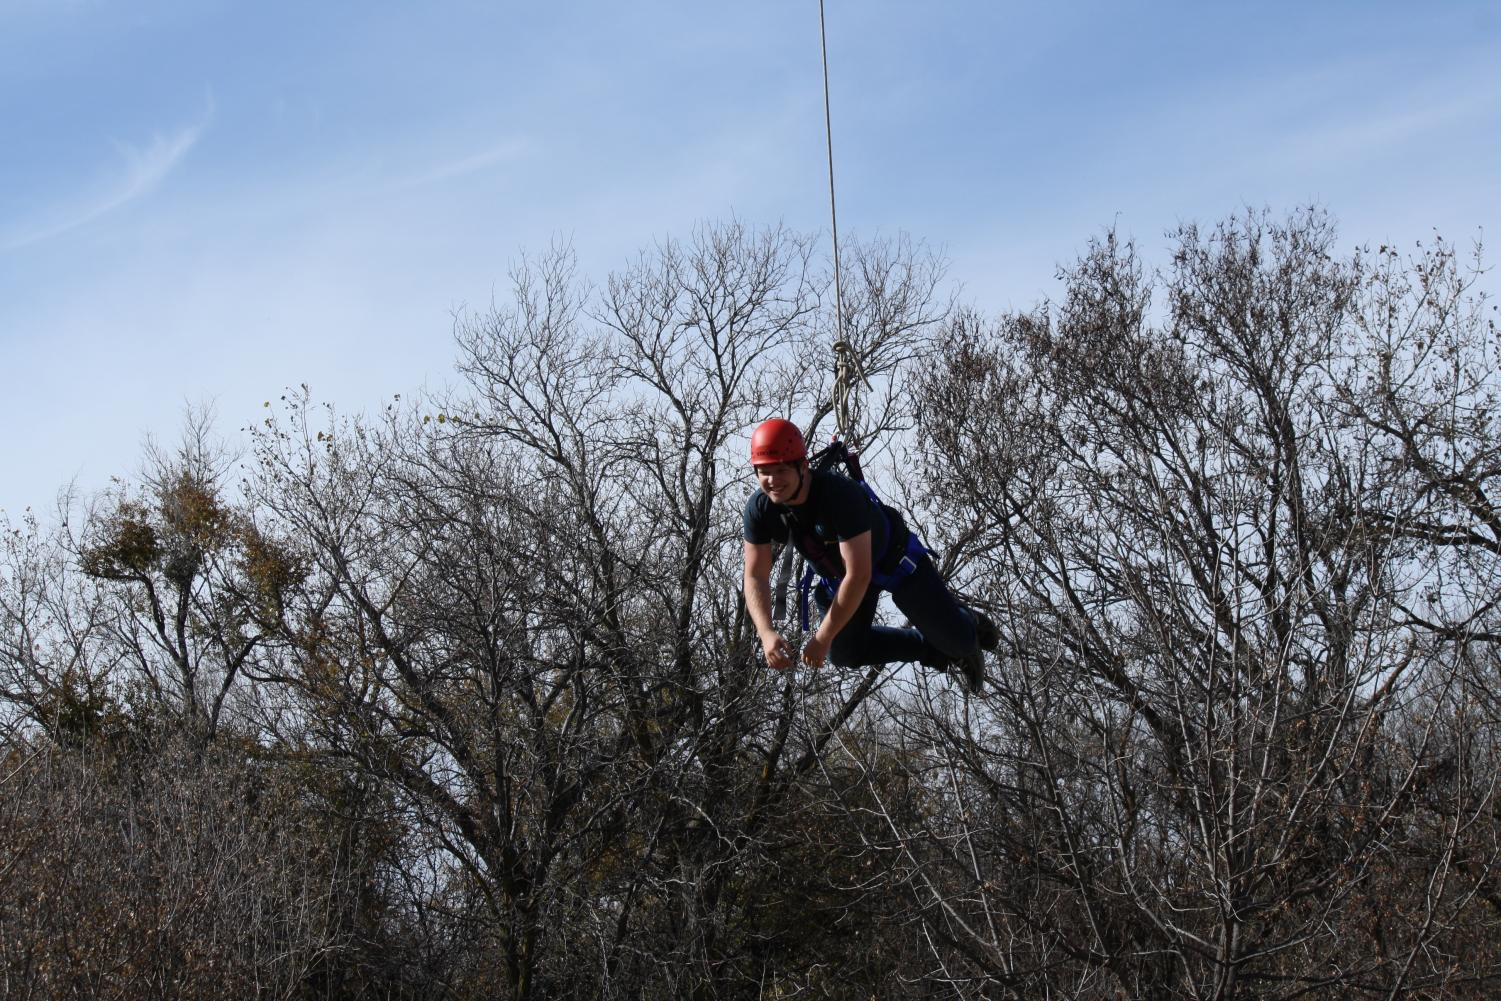 JAG-K classes participated in the Fort Hays ropes course for team building exercises.